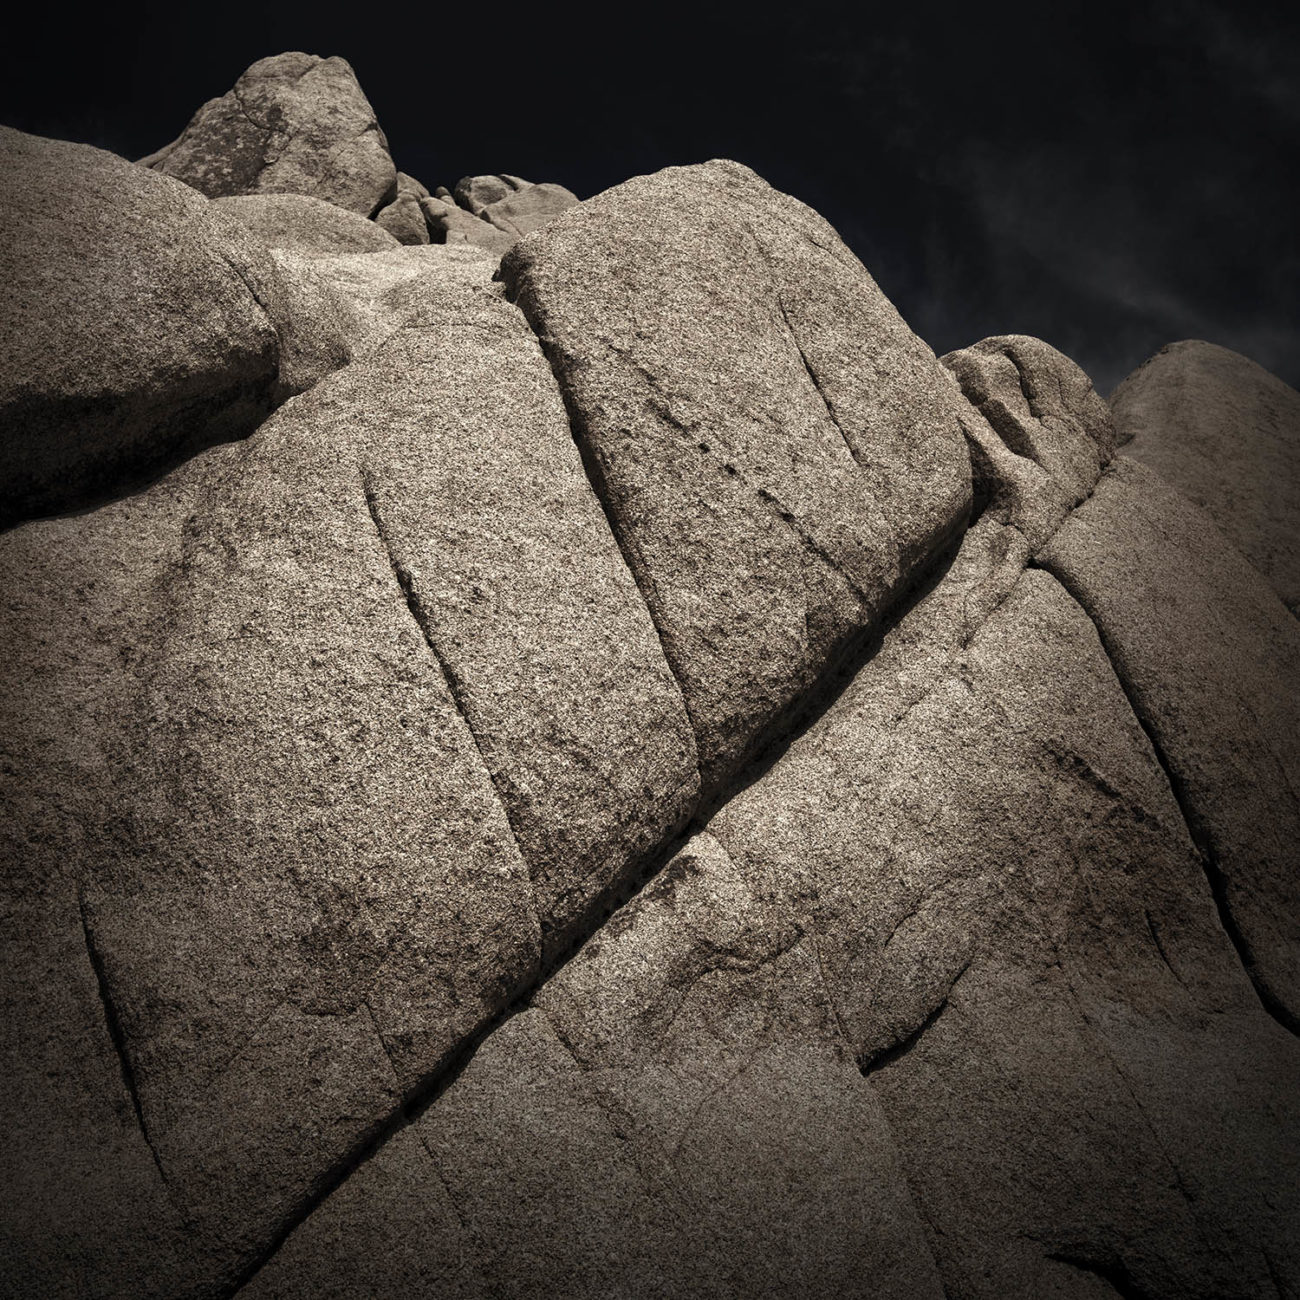 Diagonal crack, Joshua Tree NP